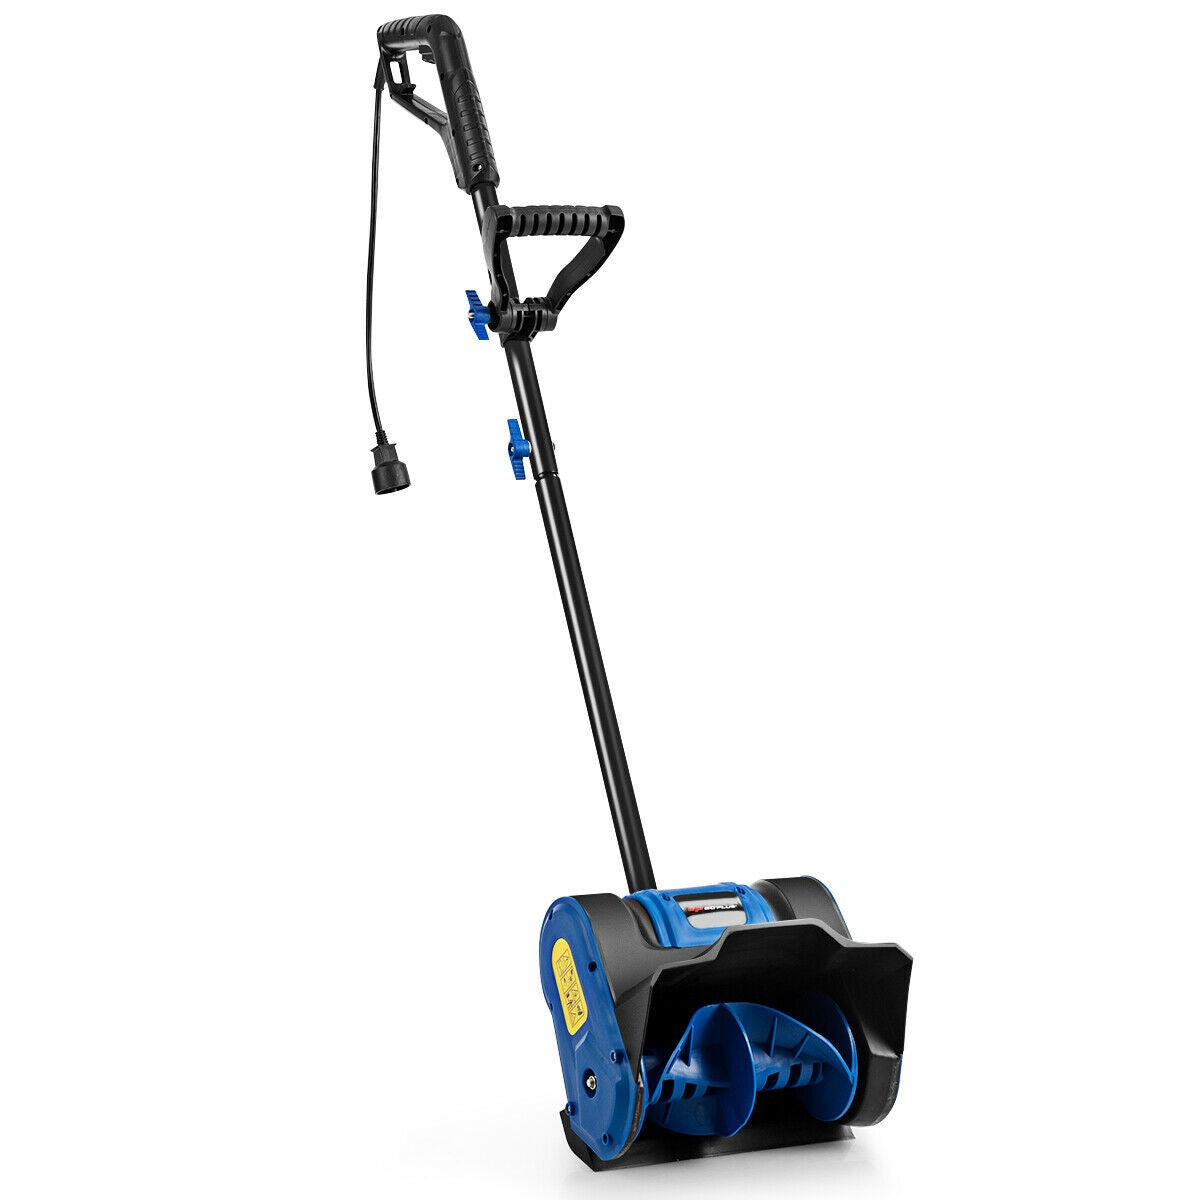 Premium Electric Snow Thower Blower Corded 12in Shovel - Morealis